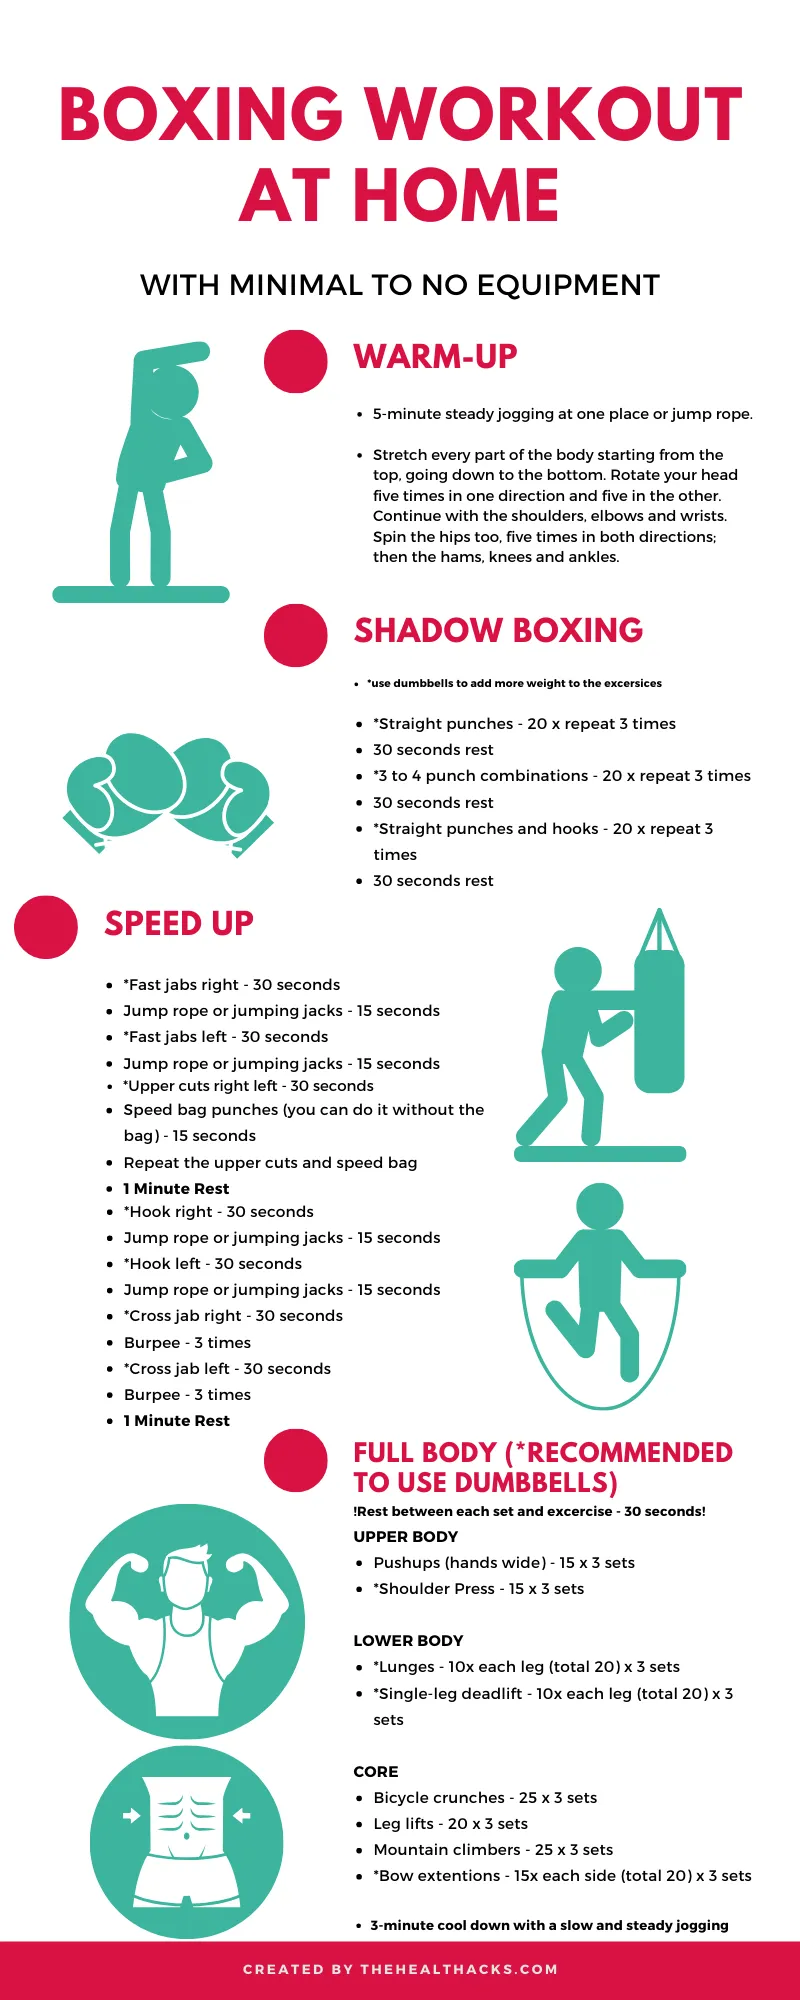 5 Health & Fitness Benefits of Boxing Workouts | The Health Hacks